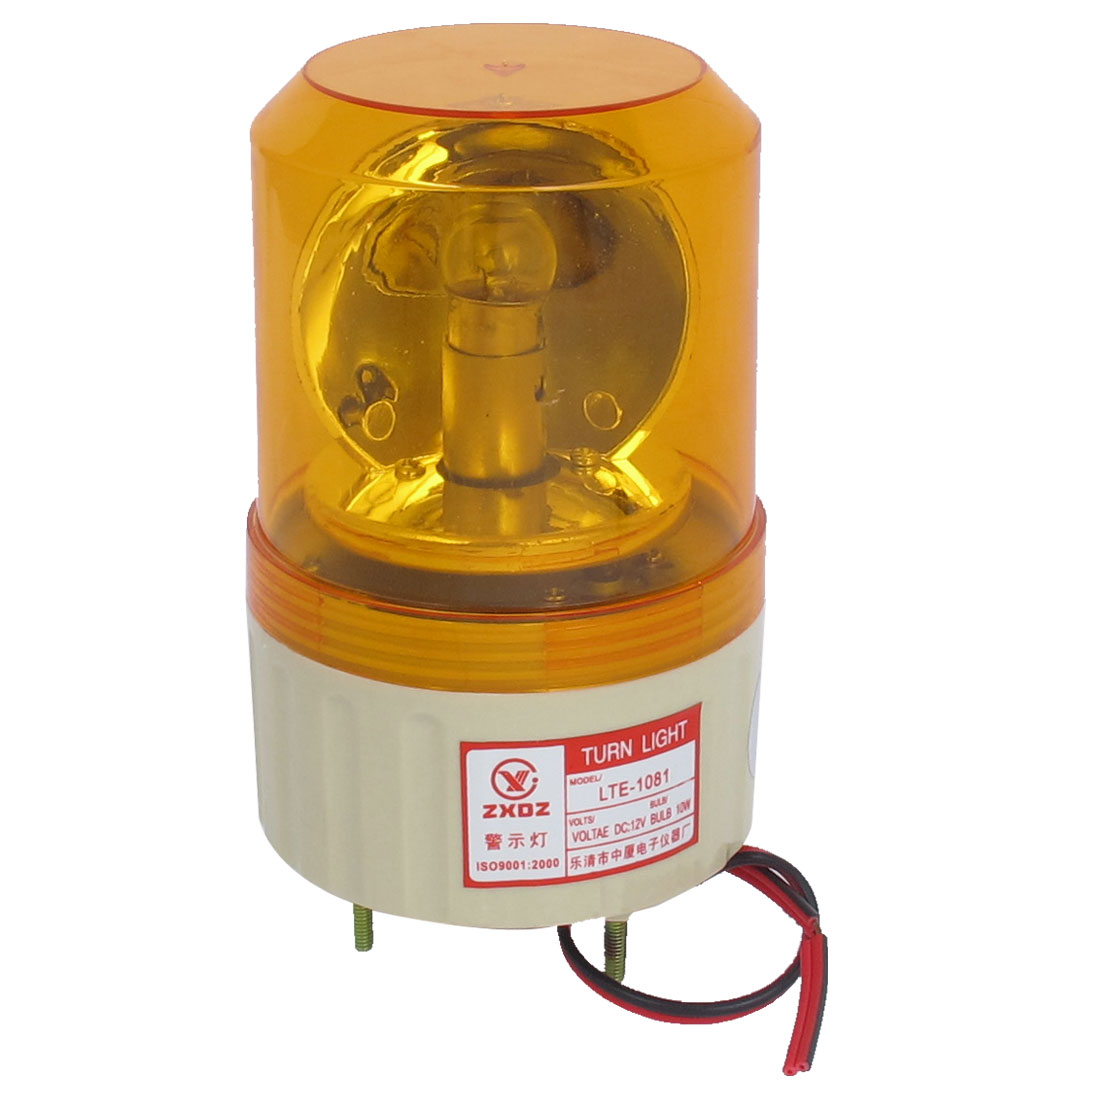 DC 12V Industrial Alarm System Rotating Warning Light Lamp Orange